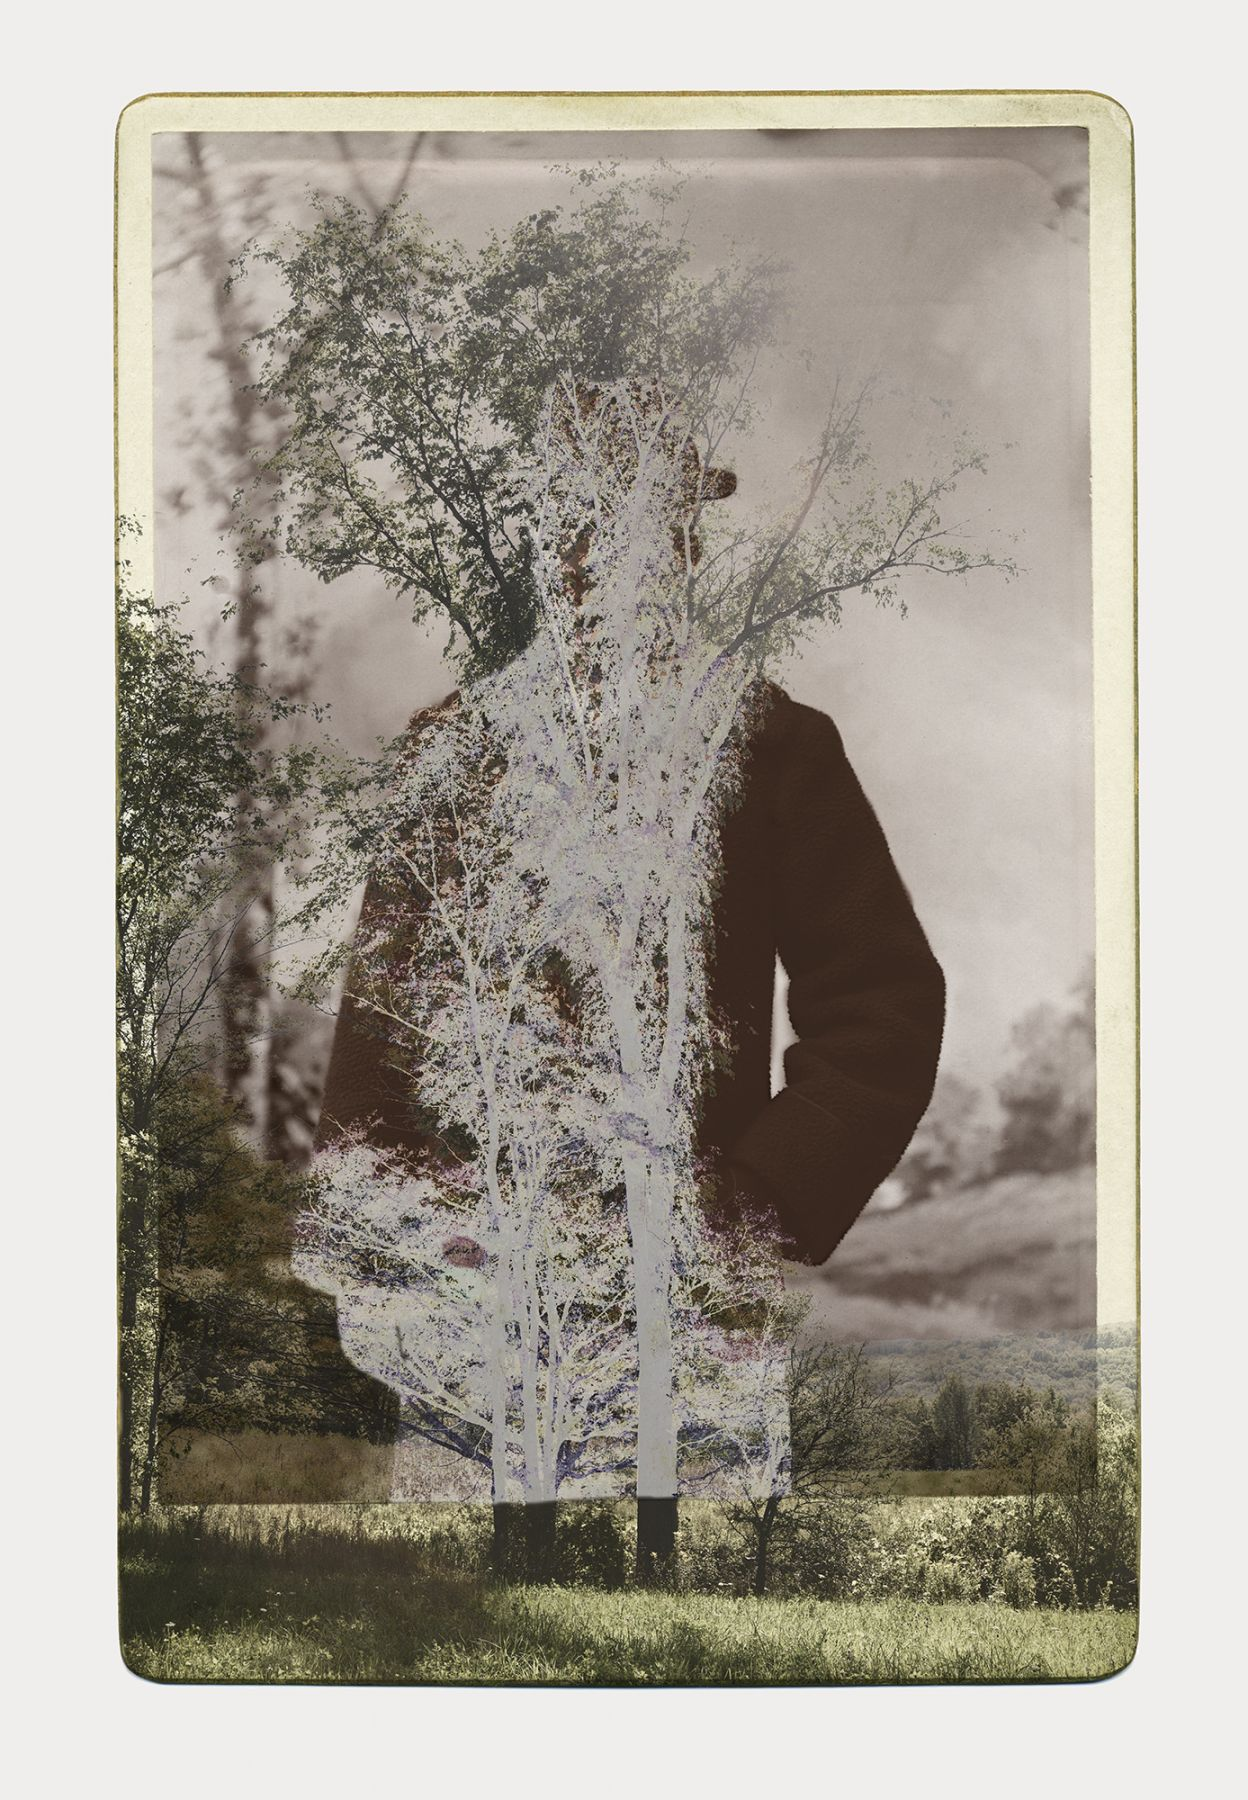 SARA ANGELUCCI | ARBORETUM (MAN/ELM) | PIGMENT PRINT ON ARCHIVAL PAPER | 24 X 34 INCHES | 2016